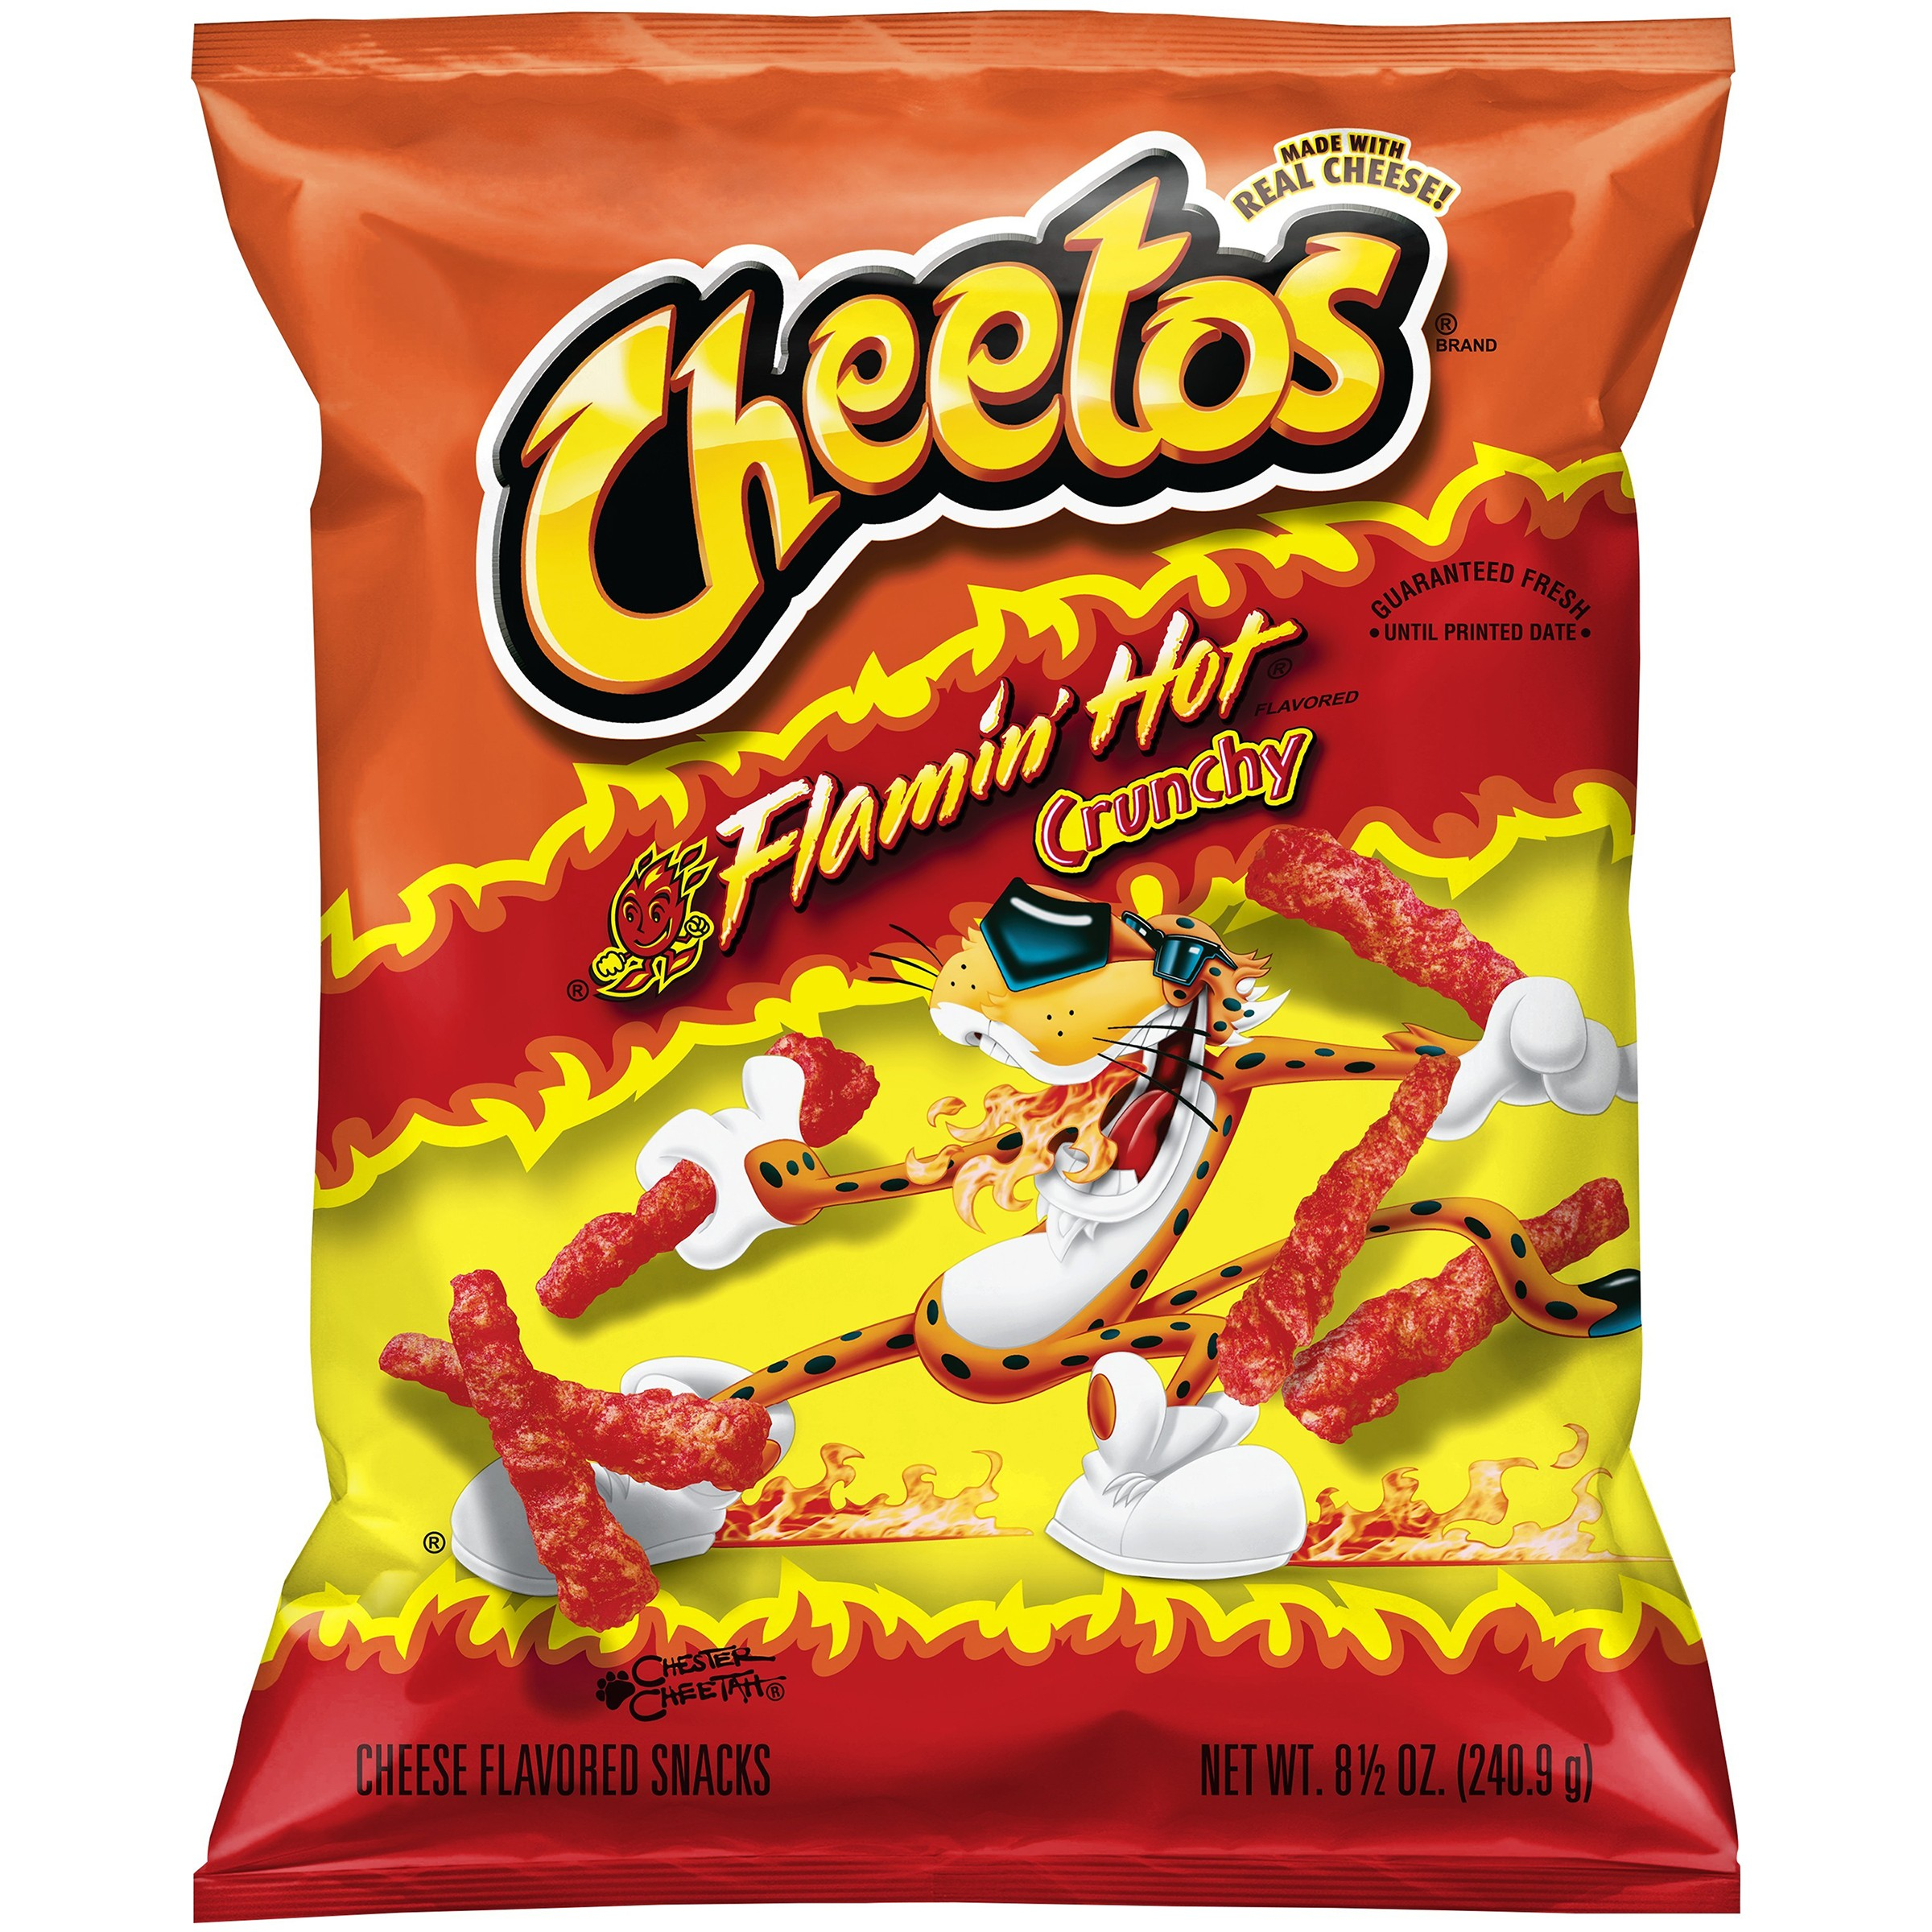 Cheetos® Crunchy Cheese Flavored Snacks, Flamin' Hot, 8.5 Oz